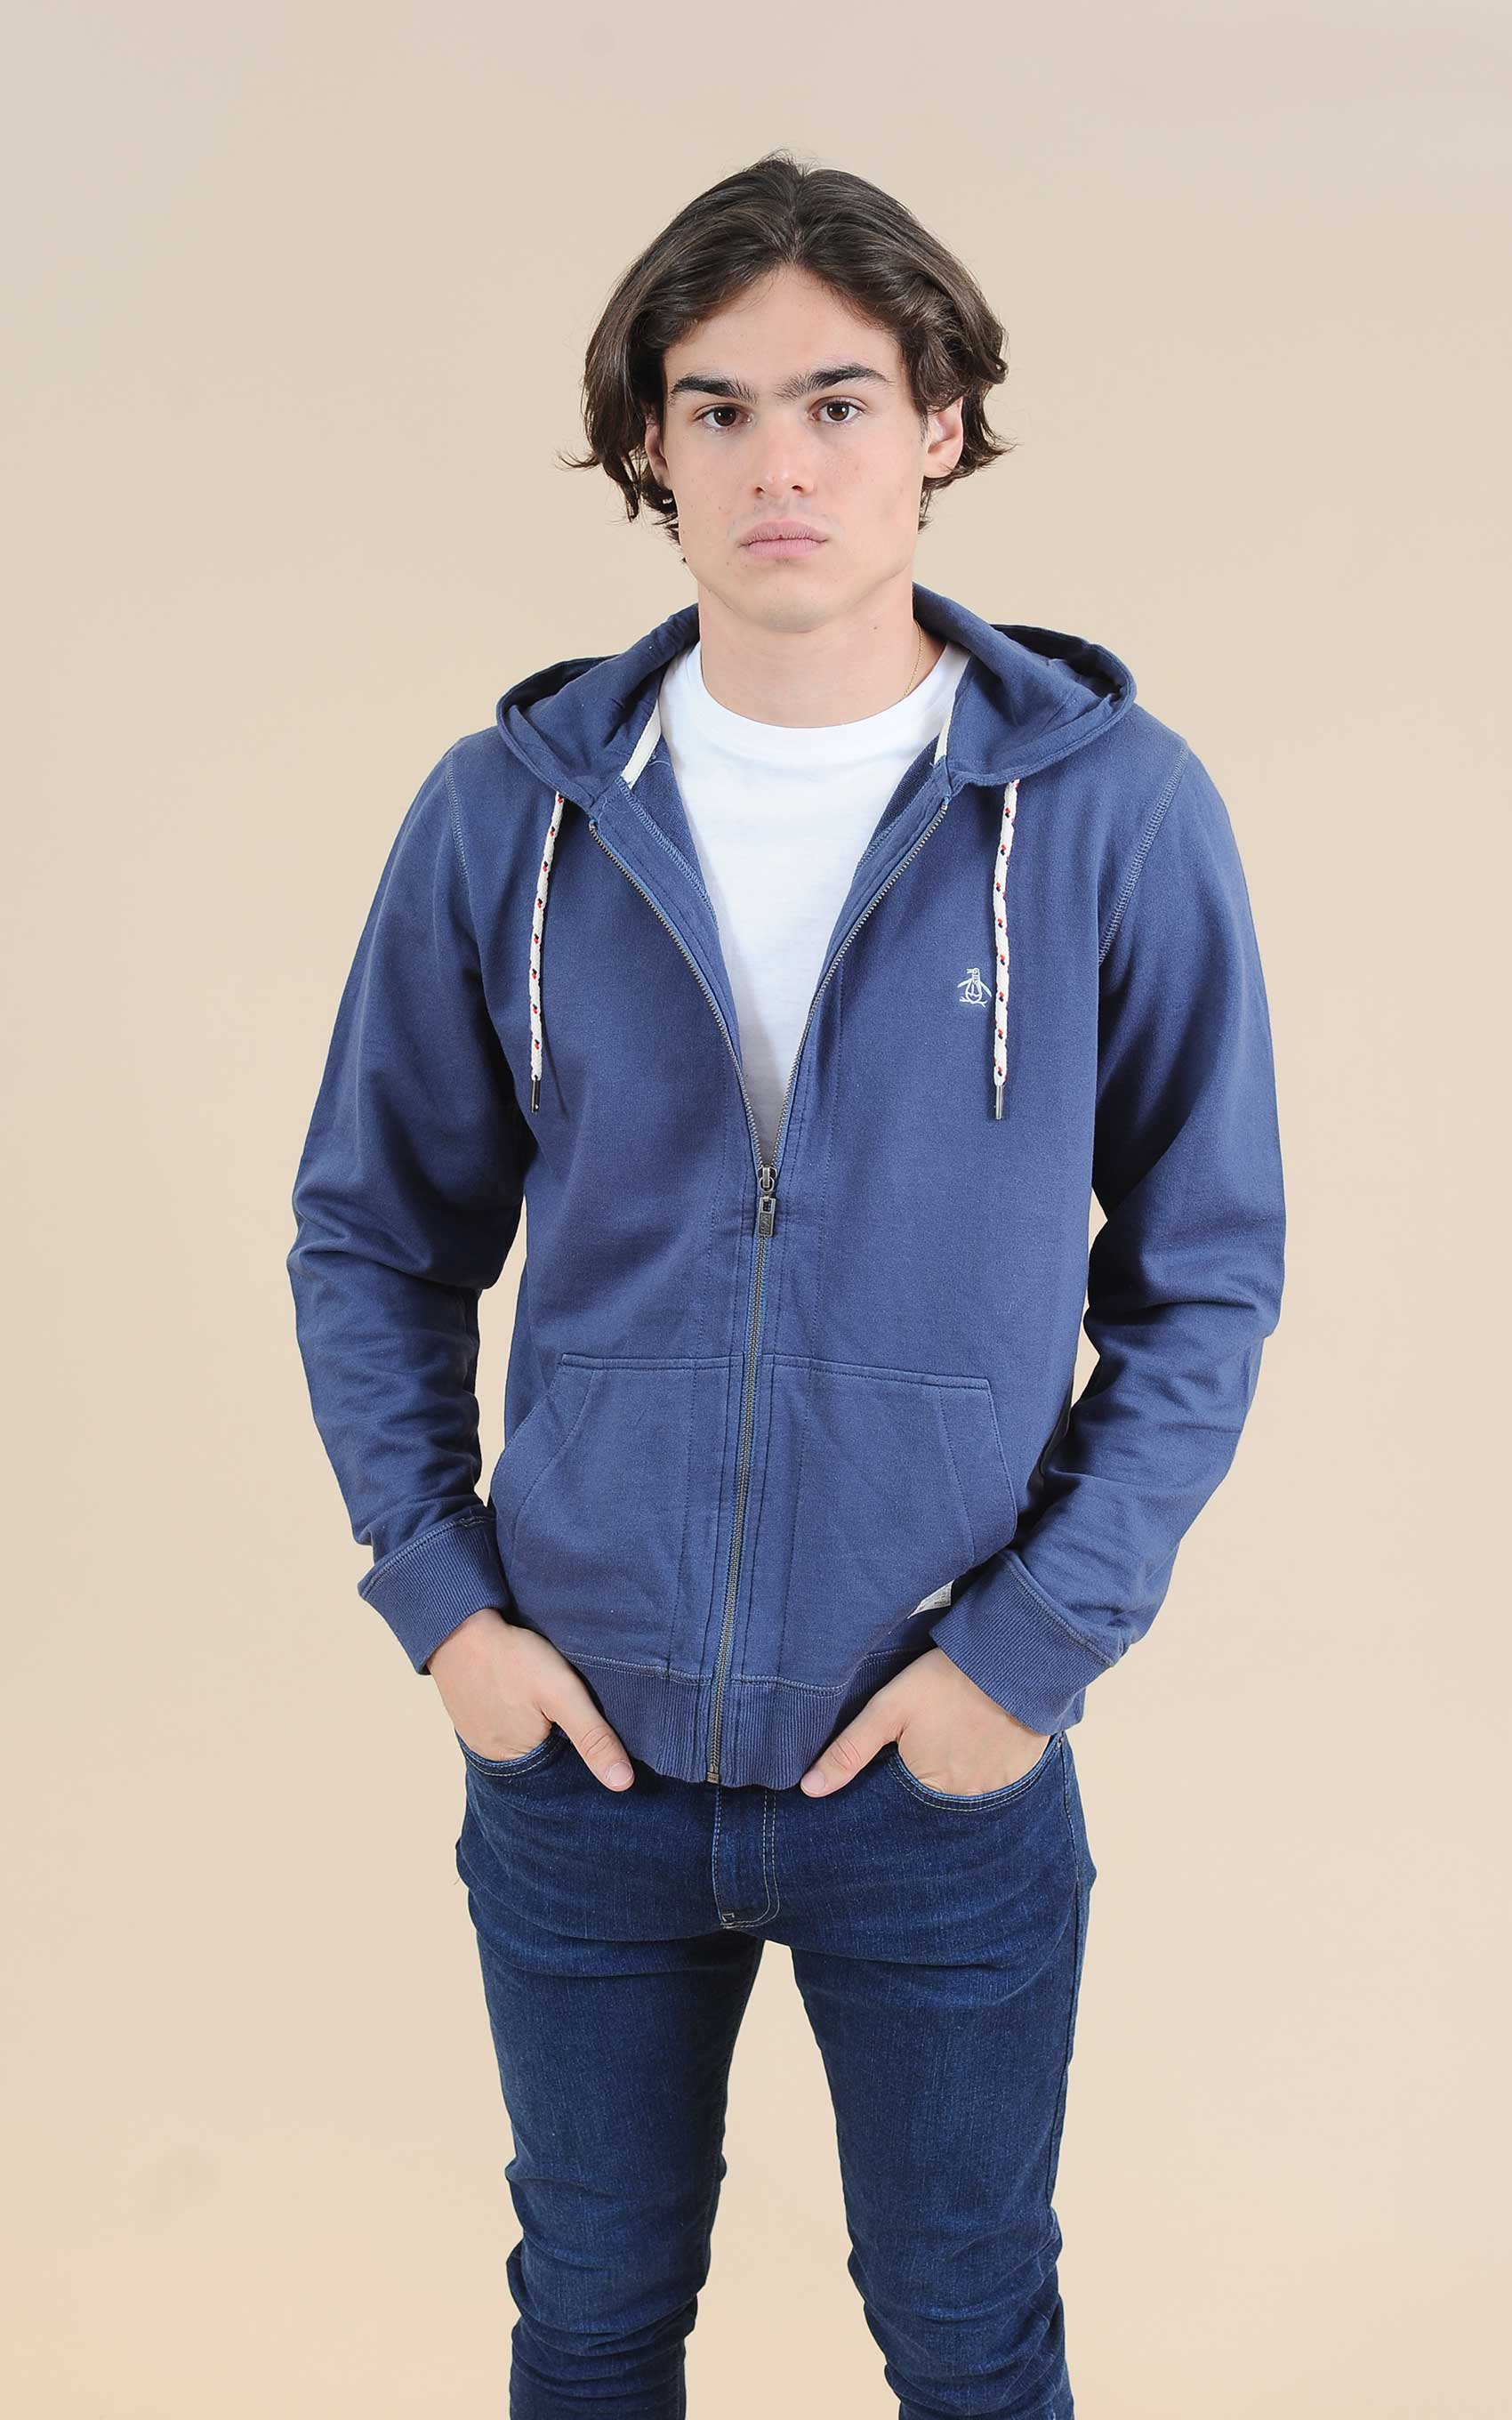 penguin_basic-hoody_43-18-2021__picture-17855